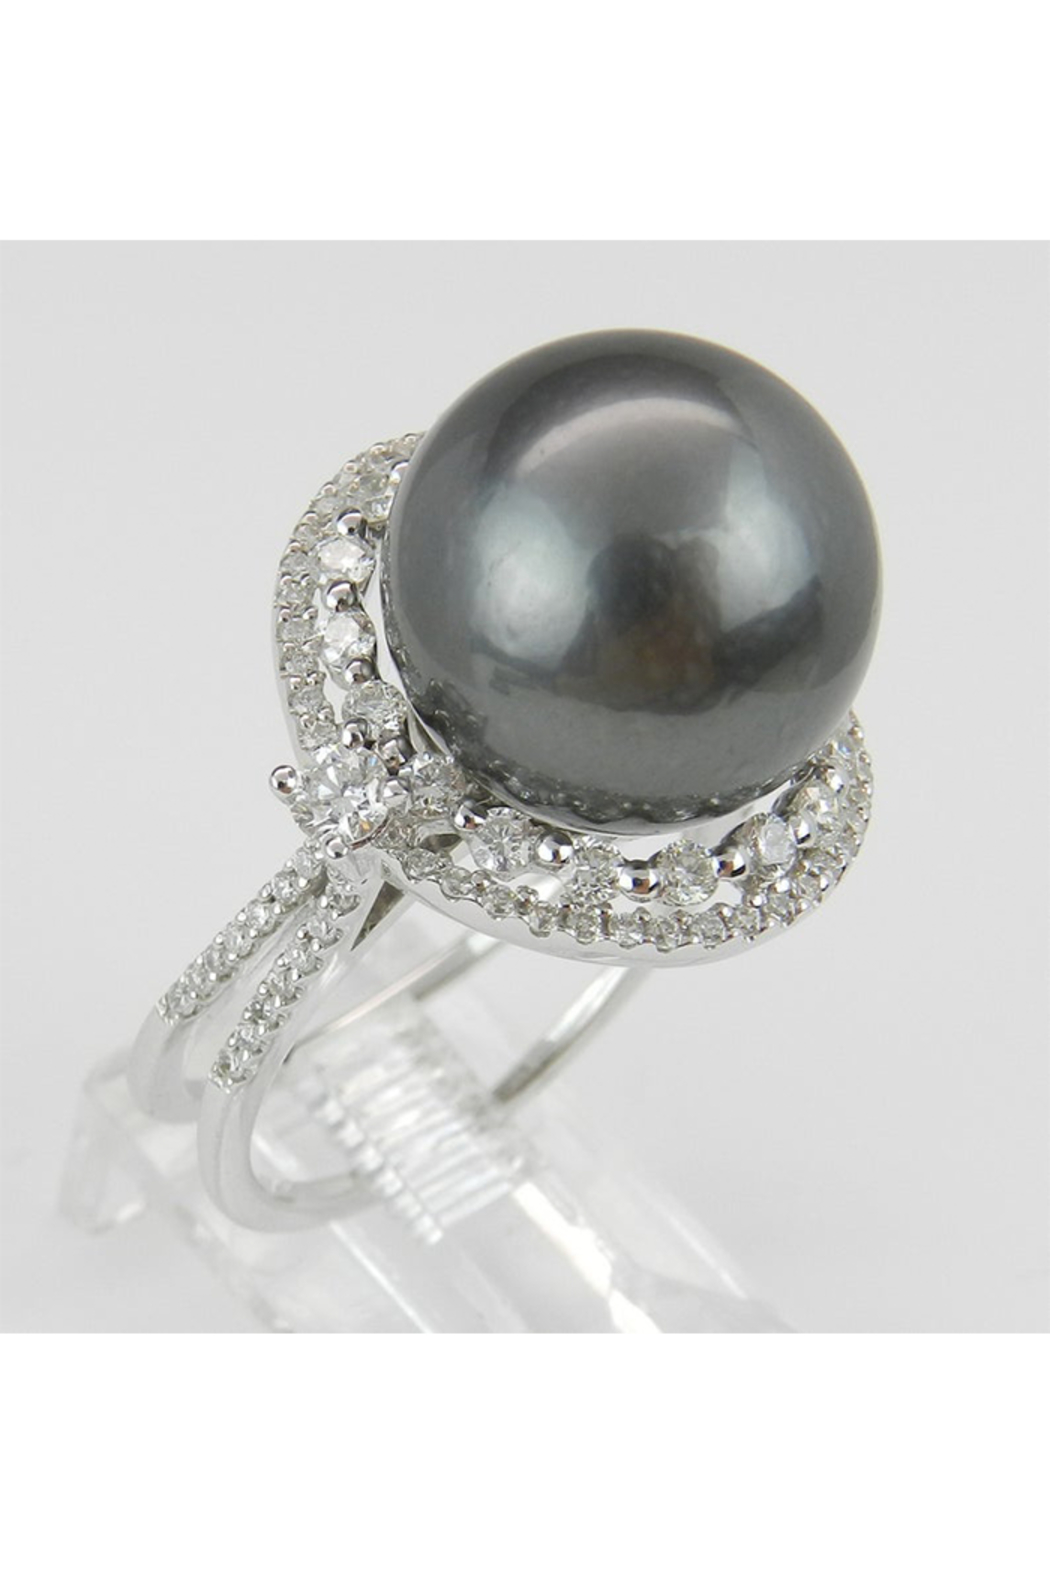 Margolin & Co Black Pearl Ring, Diamond and Pearl Engagement Ring, Tahitian Pearl Ring, 18K White Gold Diamond and Pearl Ring, Diamond Halo Ring - Main Image